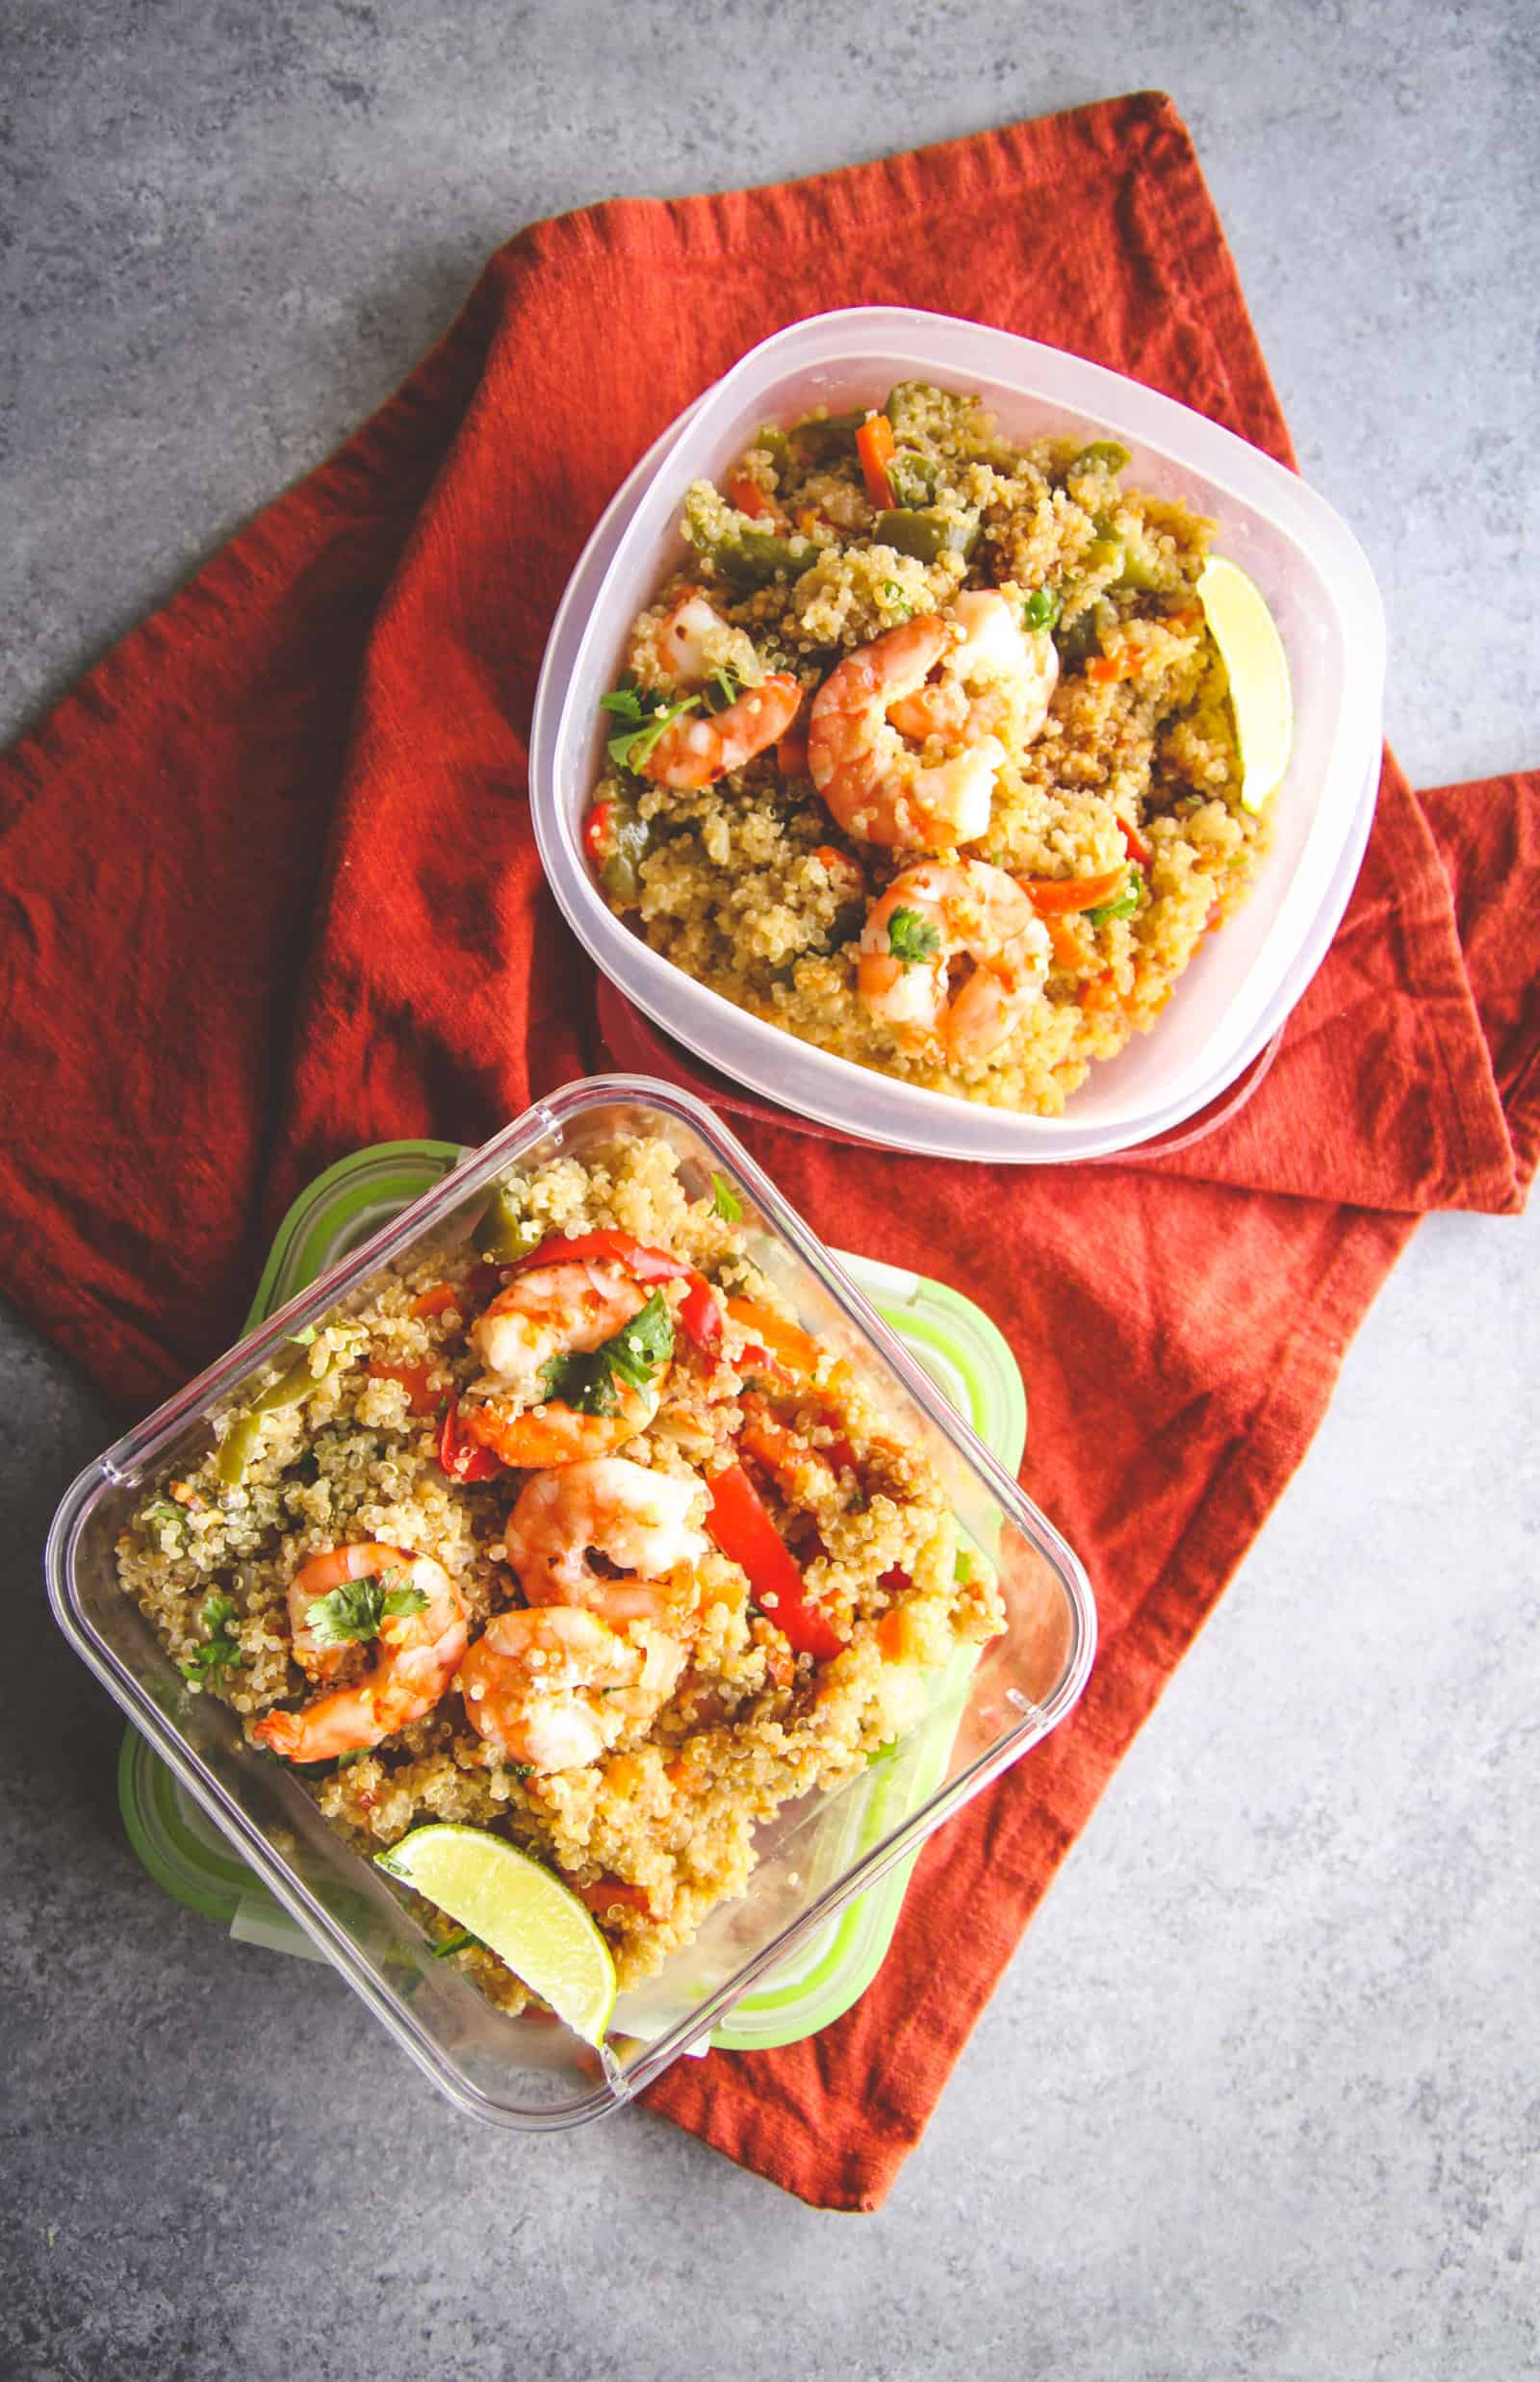 Healthy quinoa and shrimp for meal prep. Meal prepping recipes with qunioa